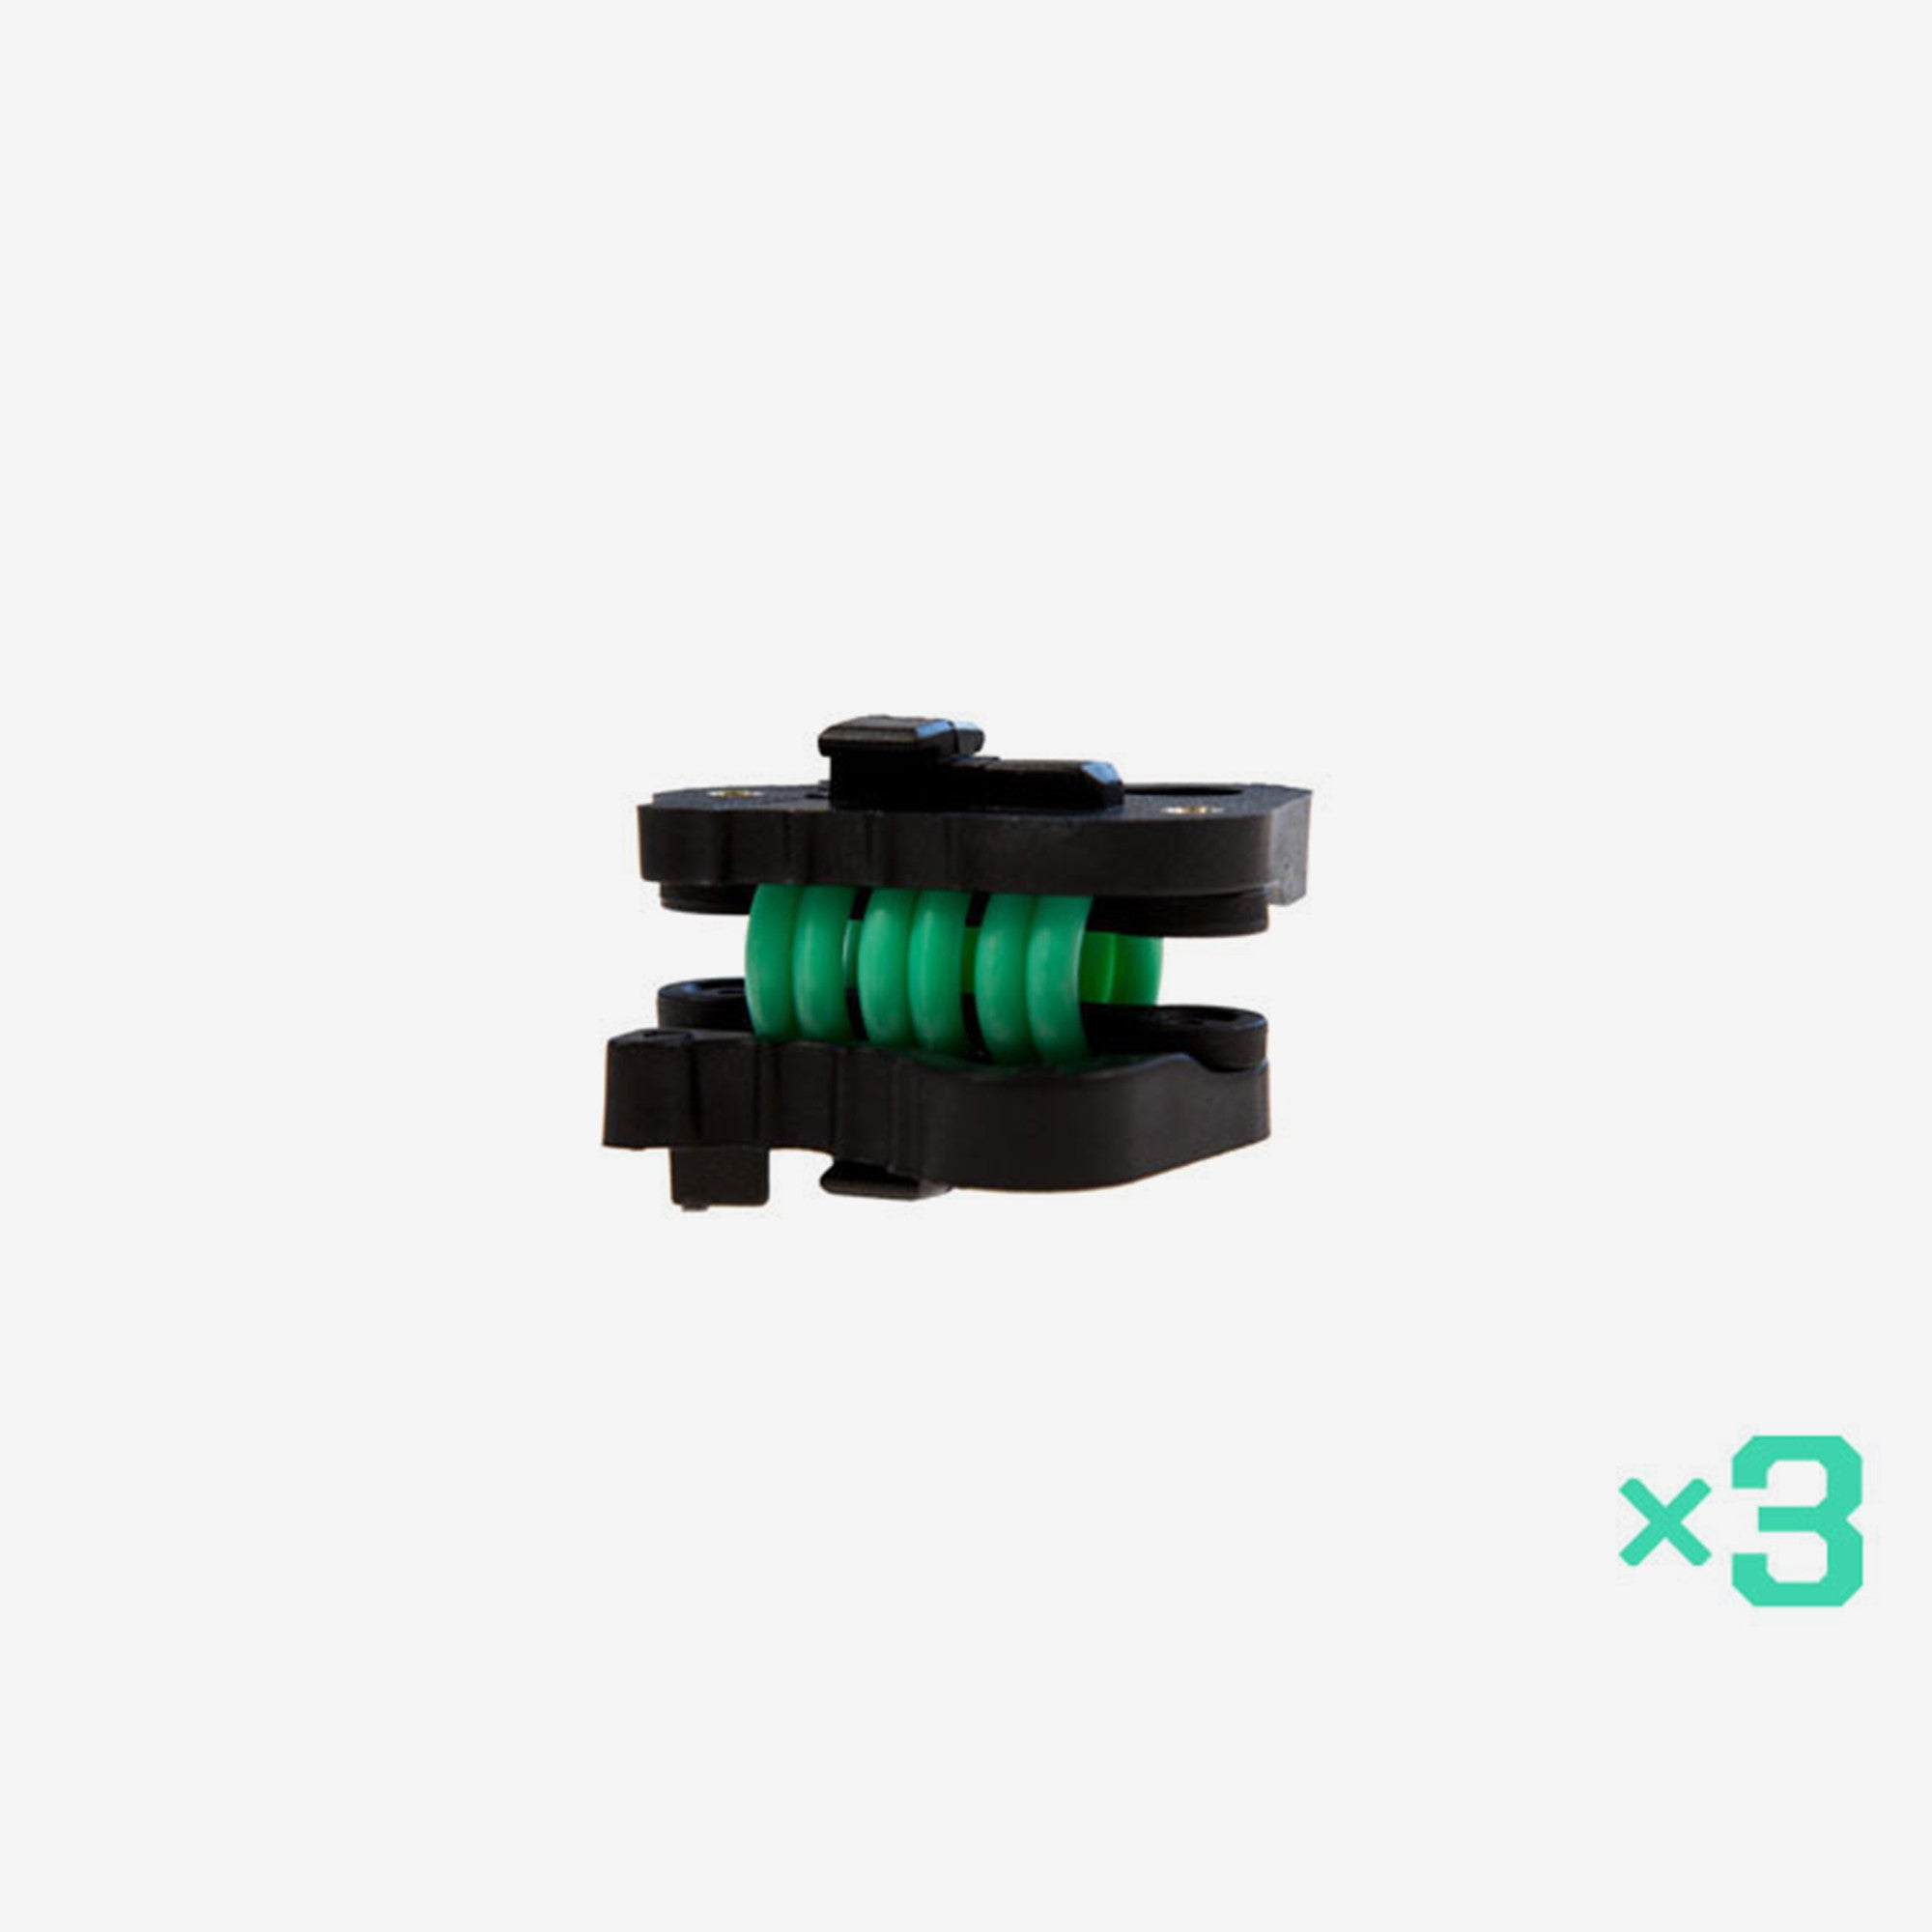 ALTA Vibration Isolator Cartridges - Teal